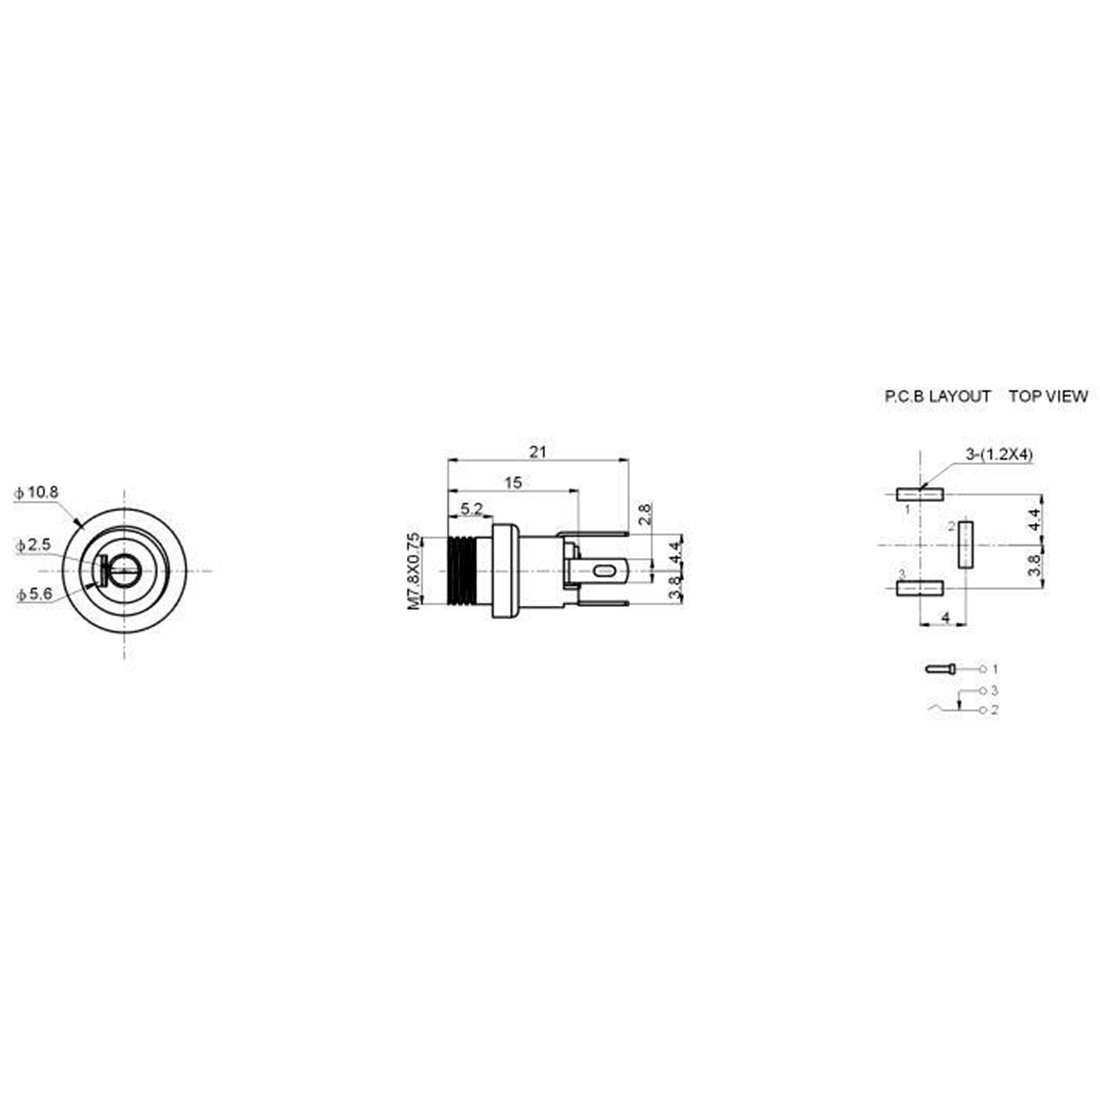 Uxcell 55 Mm X 21 Female Dc Power Jack 3 Pin Wiring Diagram